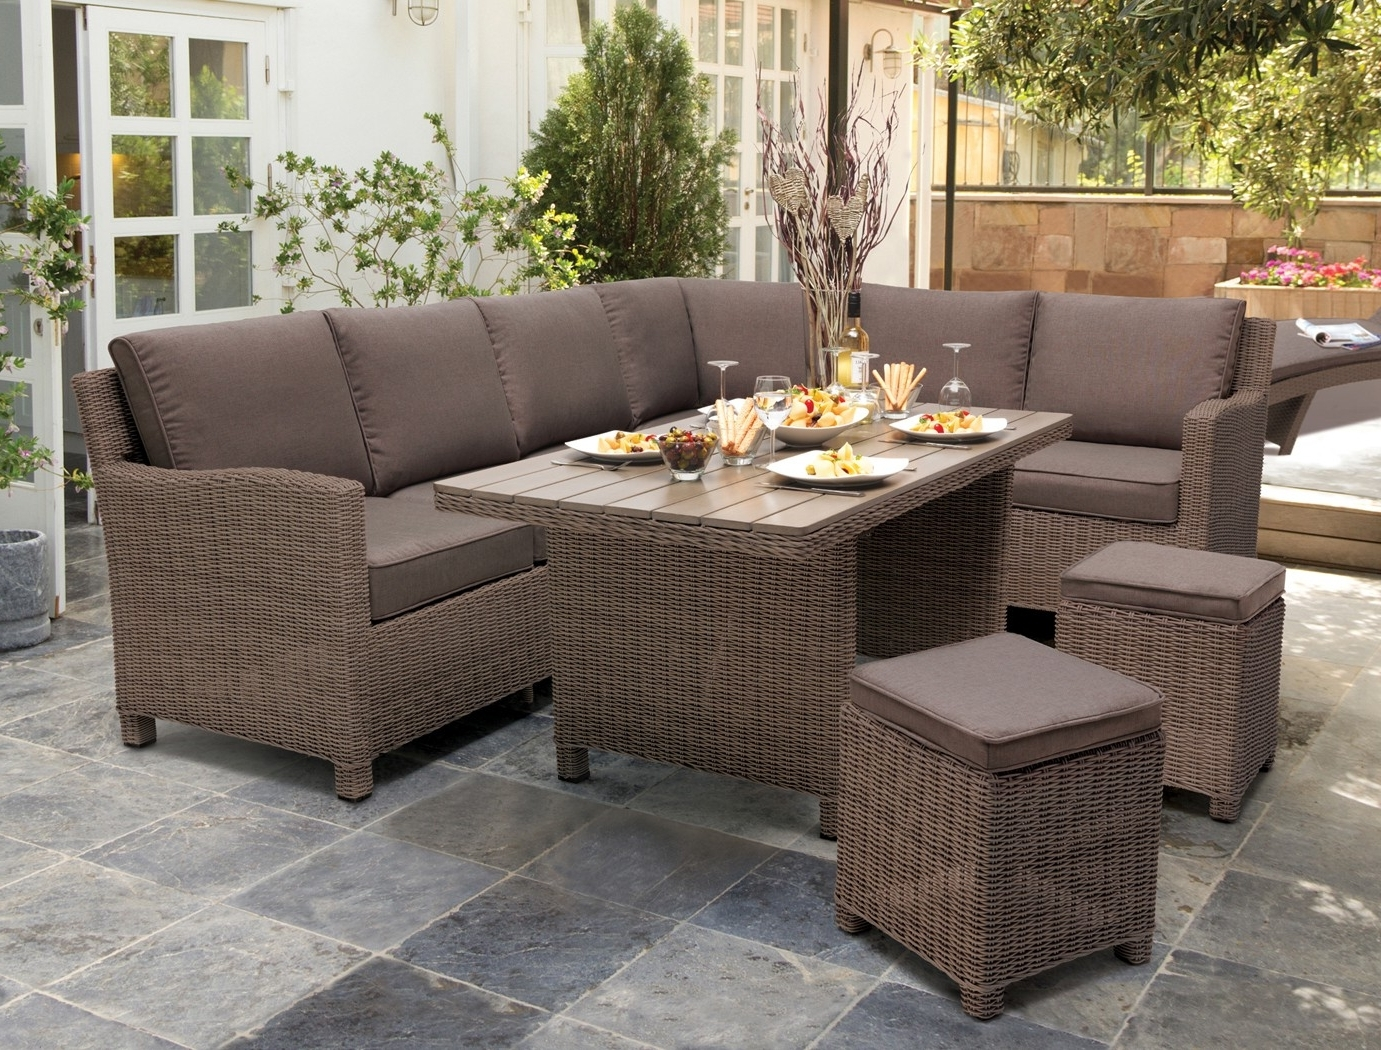 Kettler Palma Corner Set – Kettler Furniture – Patio Furniture Intended For Well Known Krevco Patio Umbrellas (View 8 of 20)